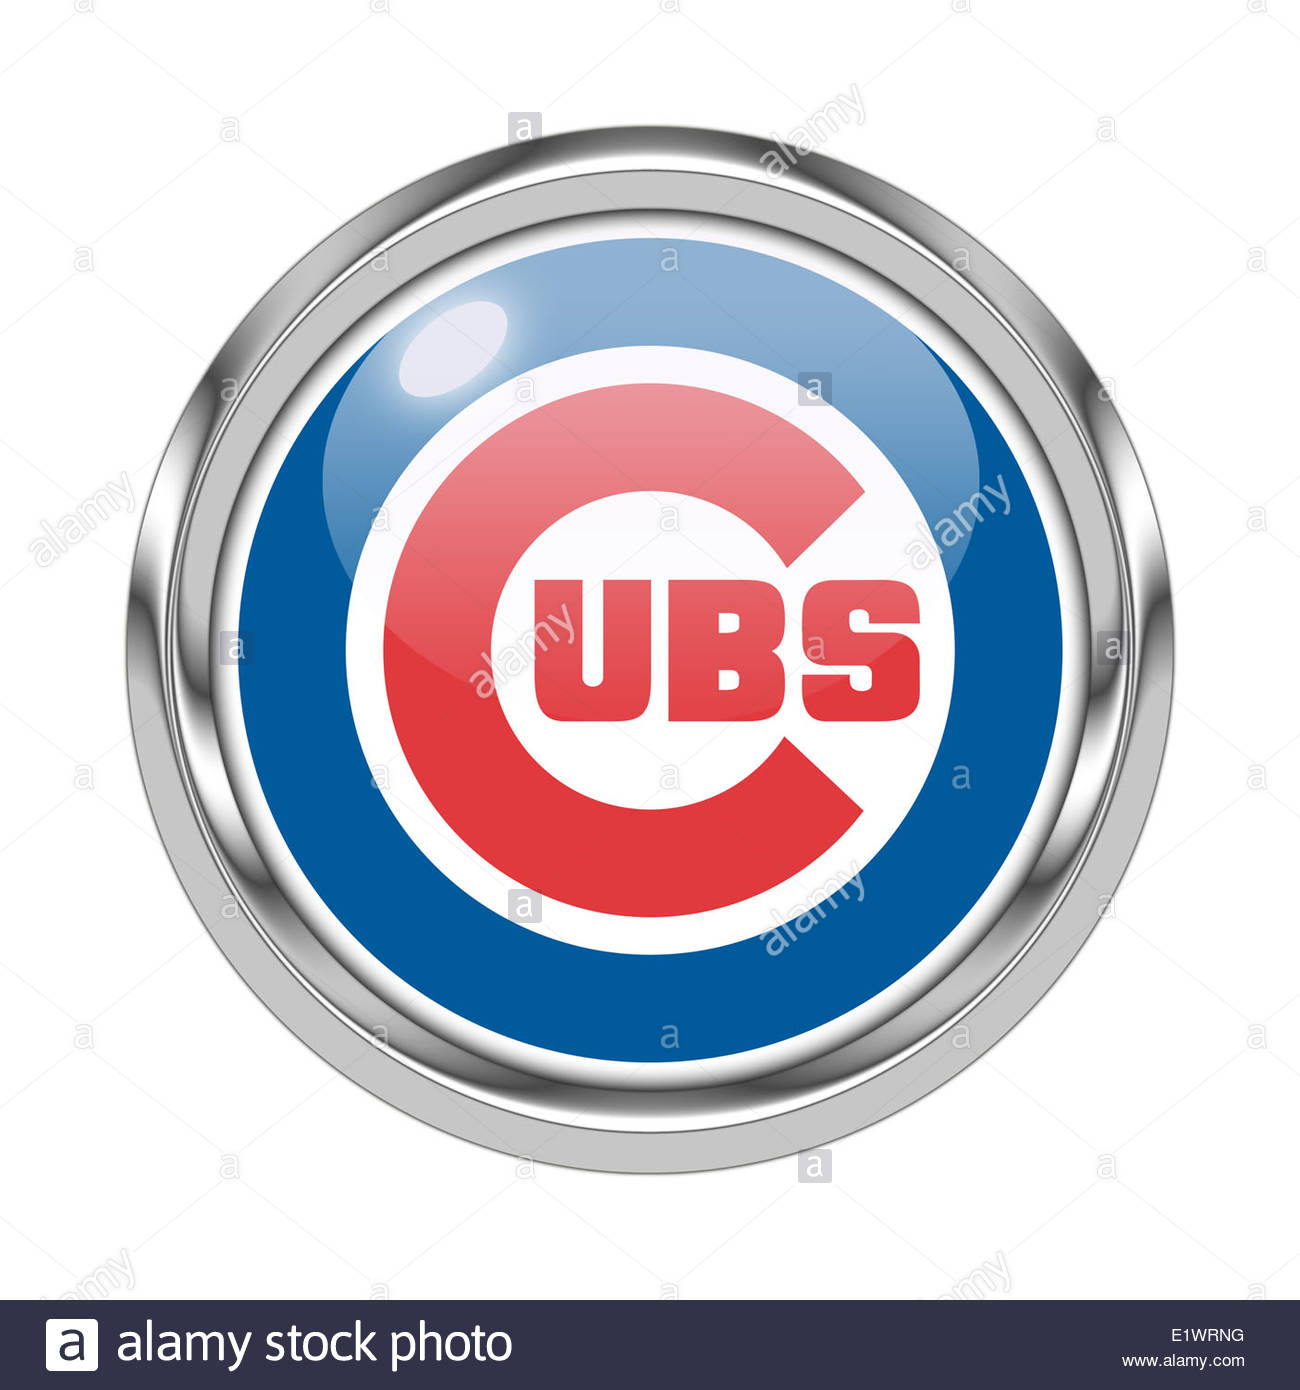 Chicago cubs icon logo isolated app button stock photo royalty chicago cubs icon logo isolated app button buycottarizona